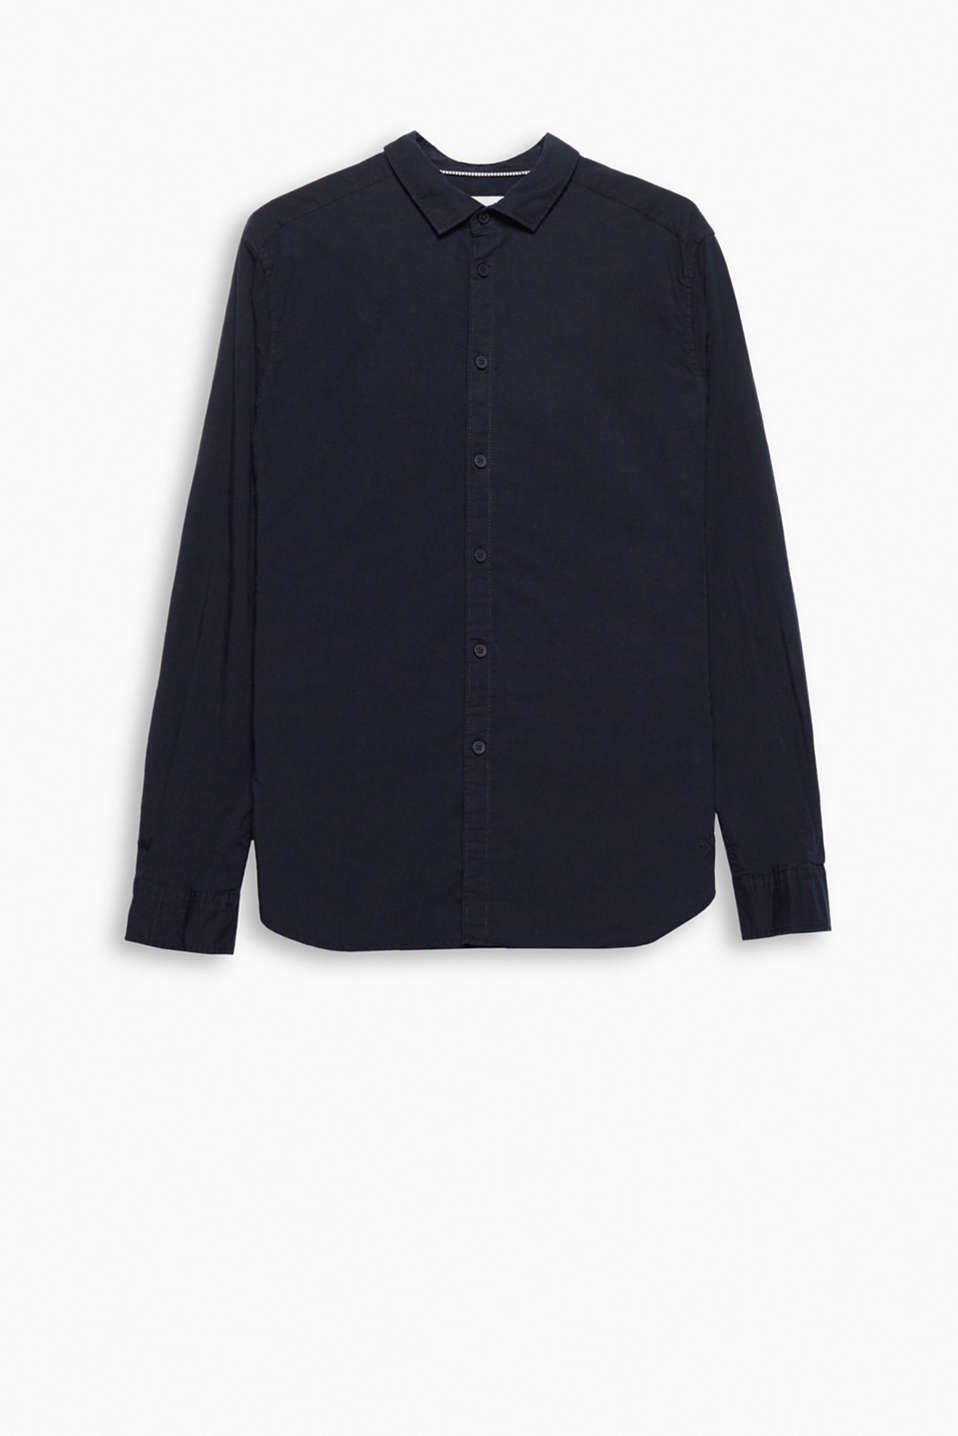 An everyday favourite: a plain coloured shirt in pure cotton with stretch for comfort, with a narrow collar.